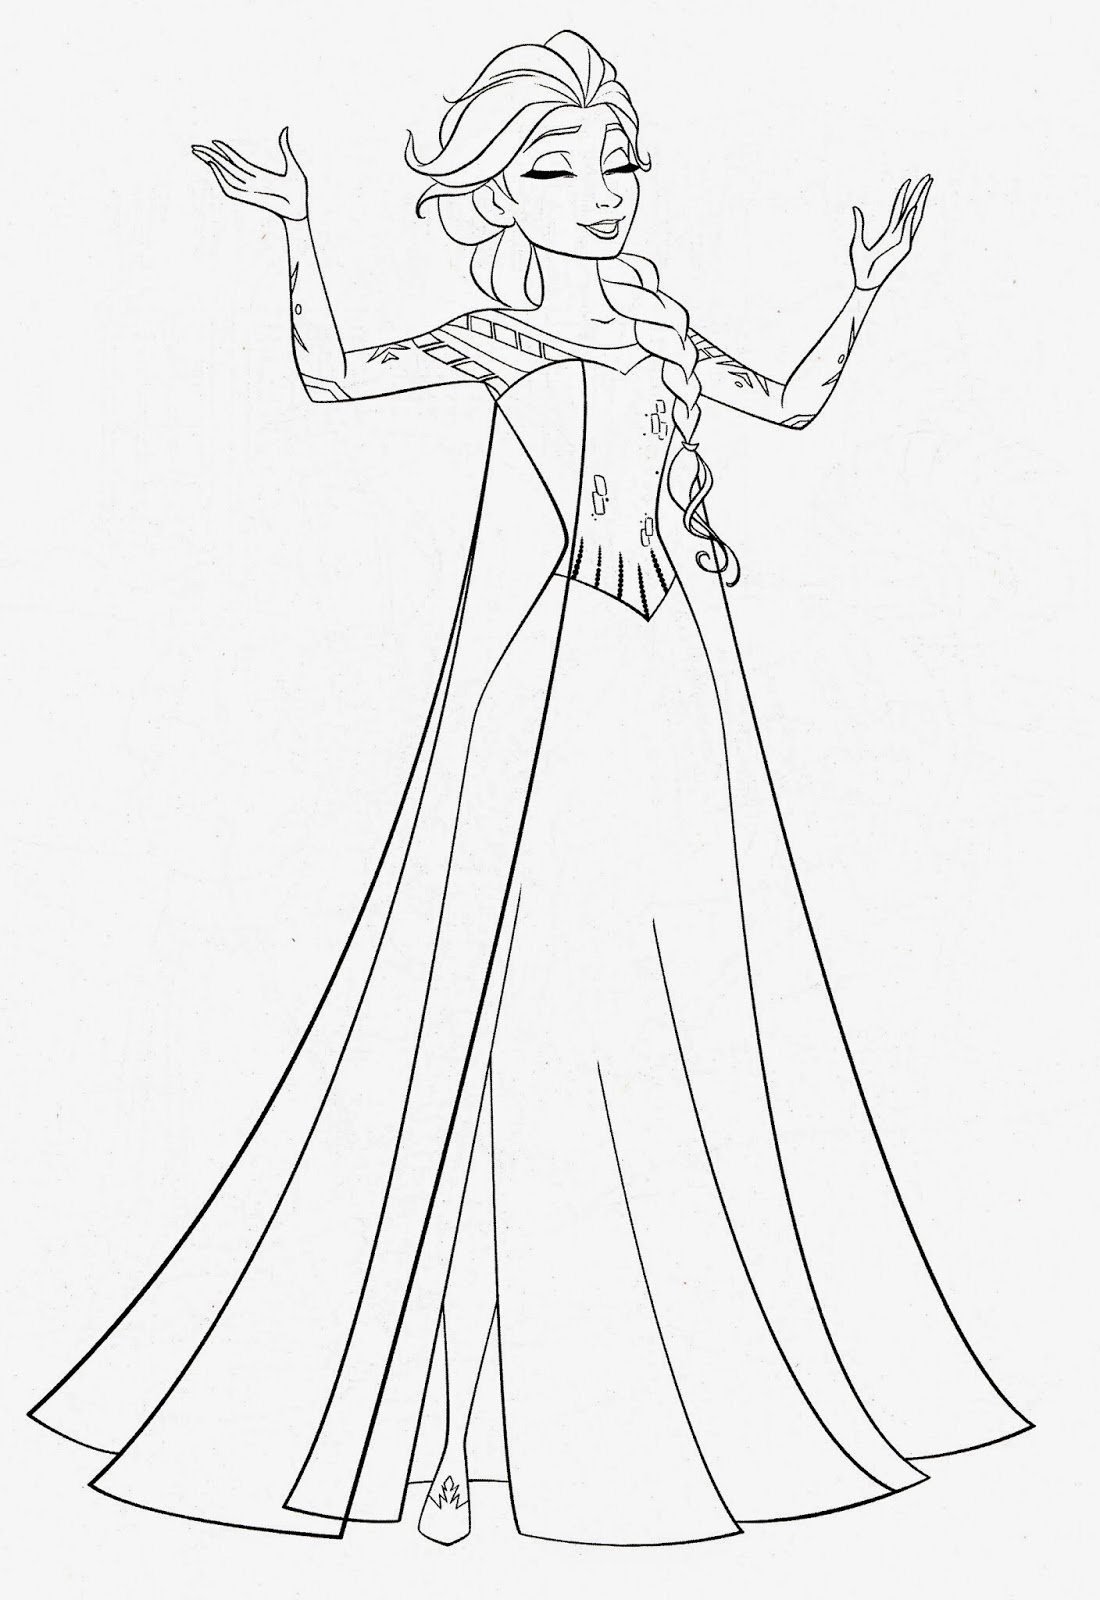 coloring disney princess clipart black and white disney movie princesses quotfrozenquot printable coloring pages black princess disney clipart white coloring and